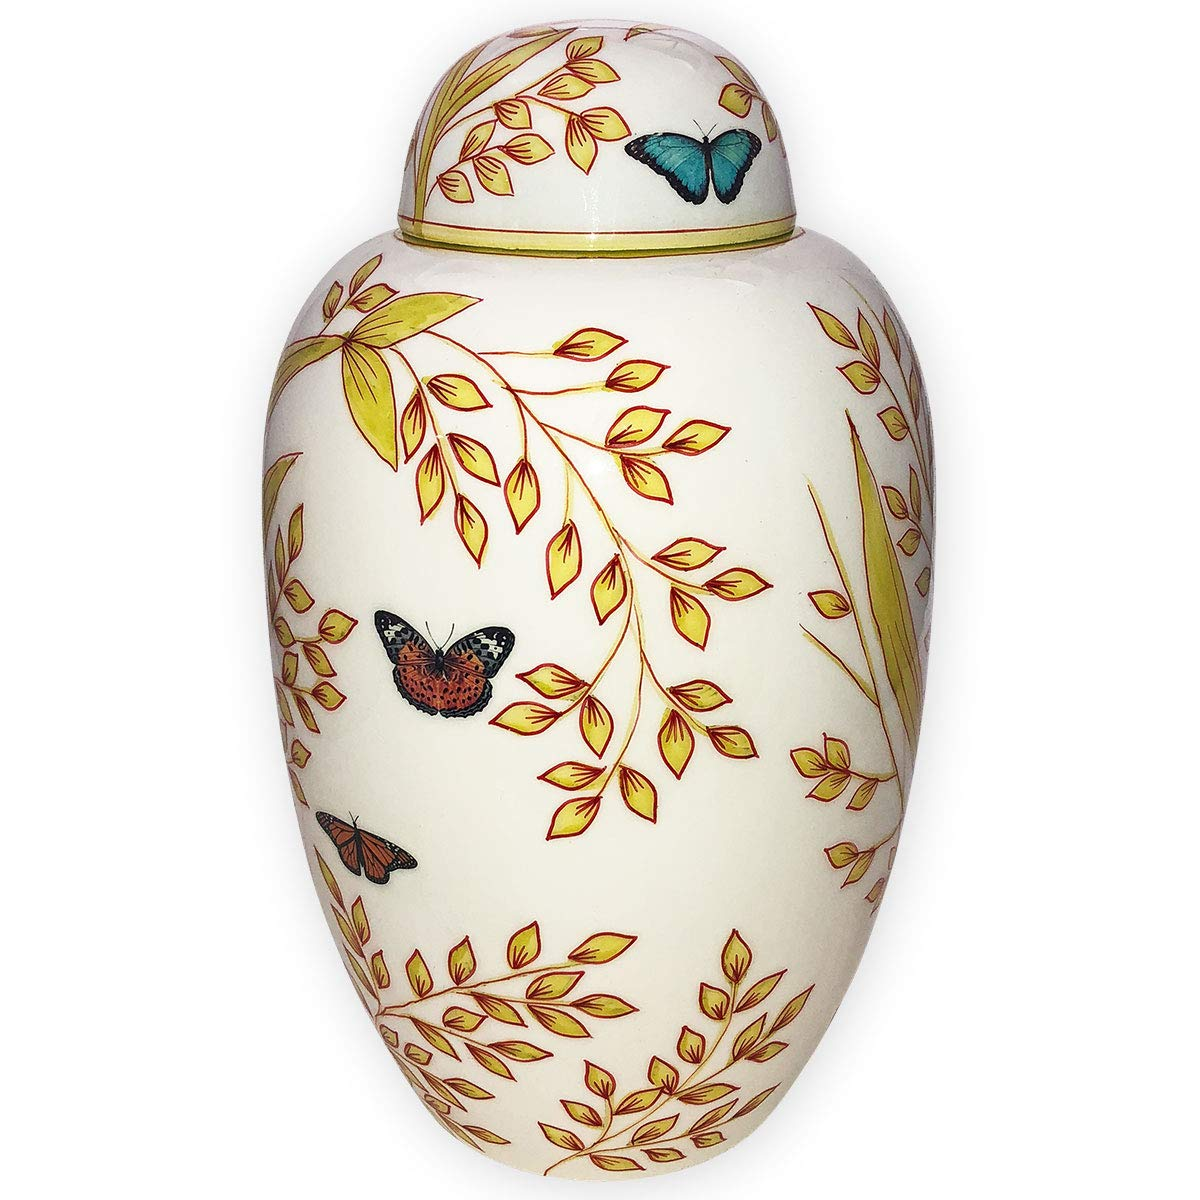 Garden Butterfly Cremation Urn by Beautiful Life Urns - Hand-Painted Funeral Urn Adorned with Butterflies (Adult, Large)